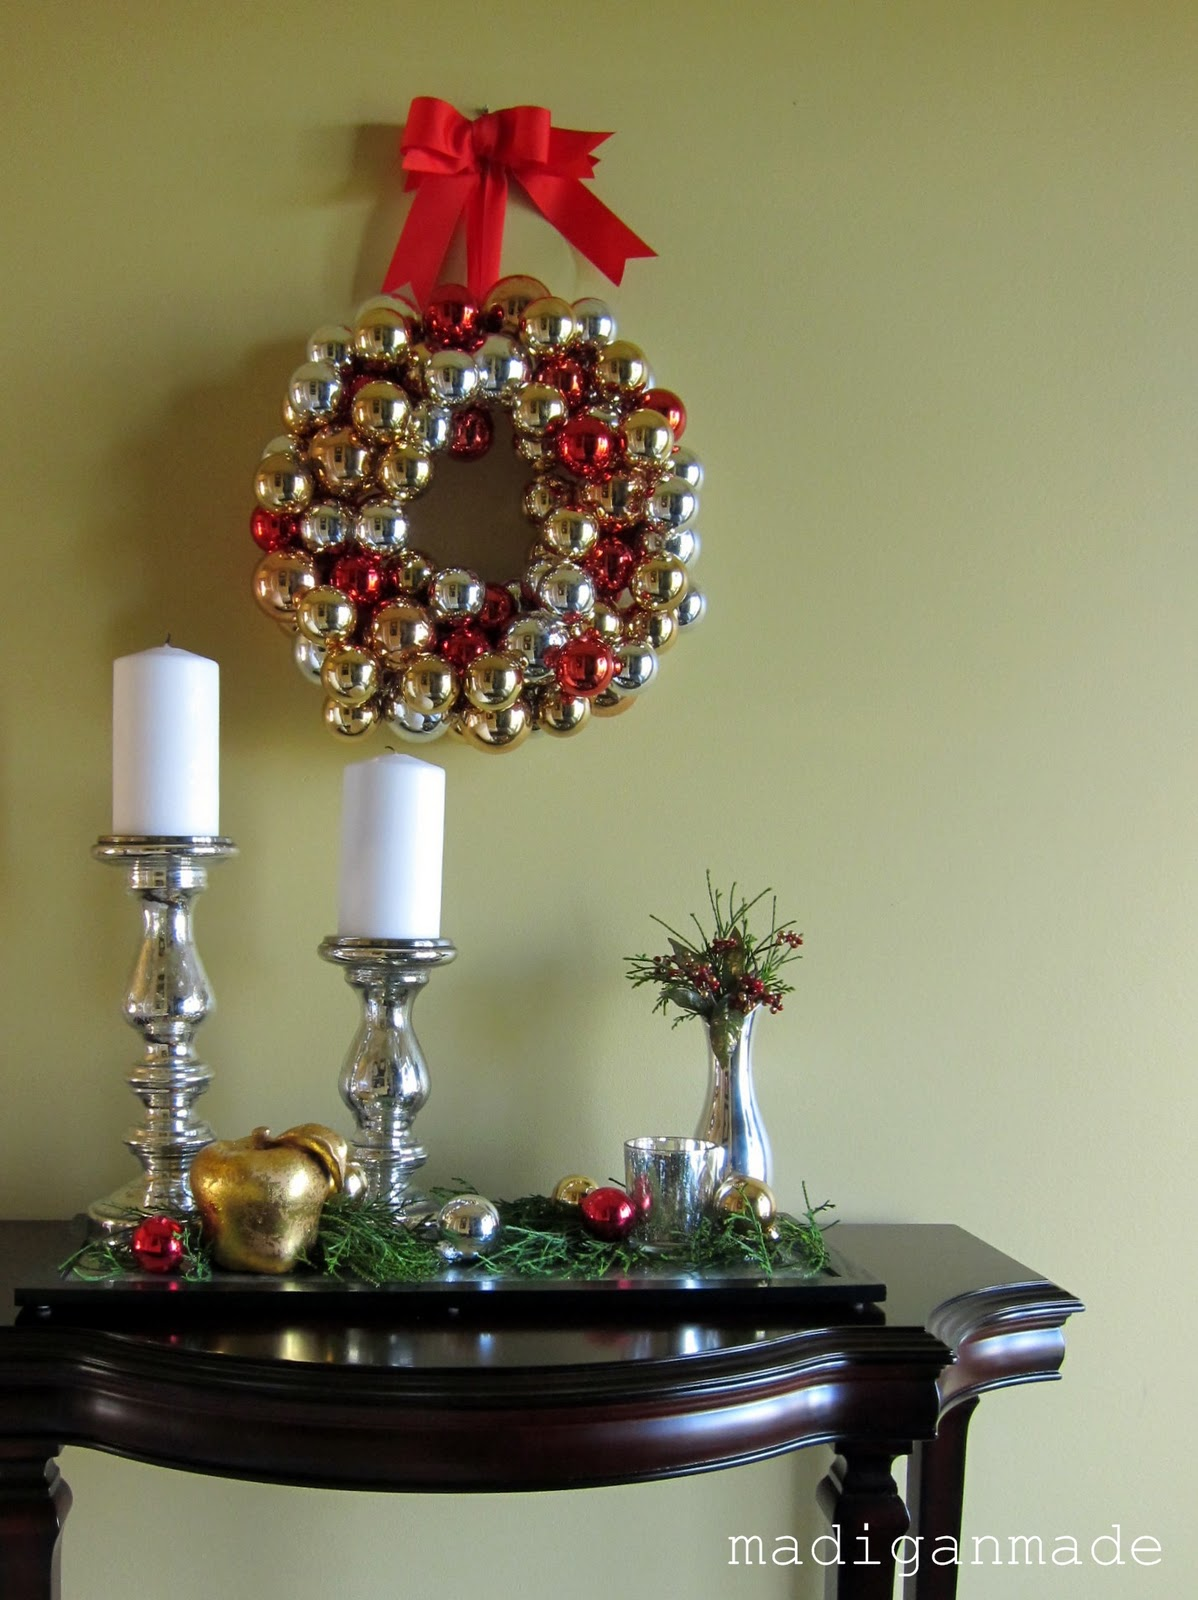 Simple and elegant ornament wreath